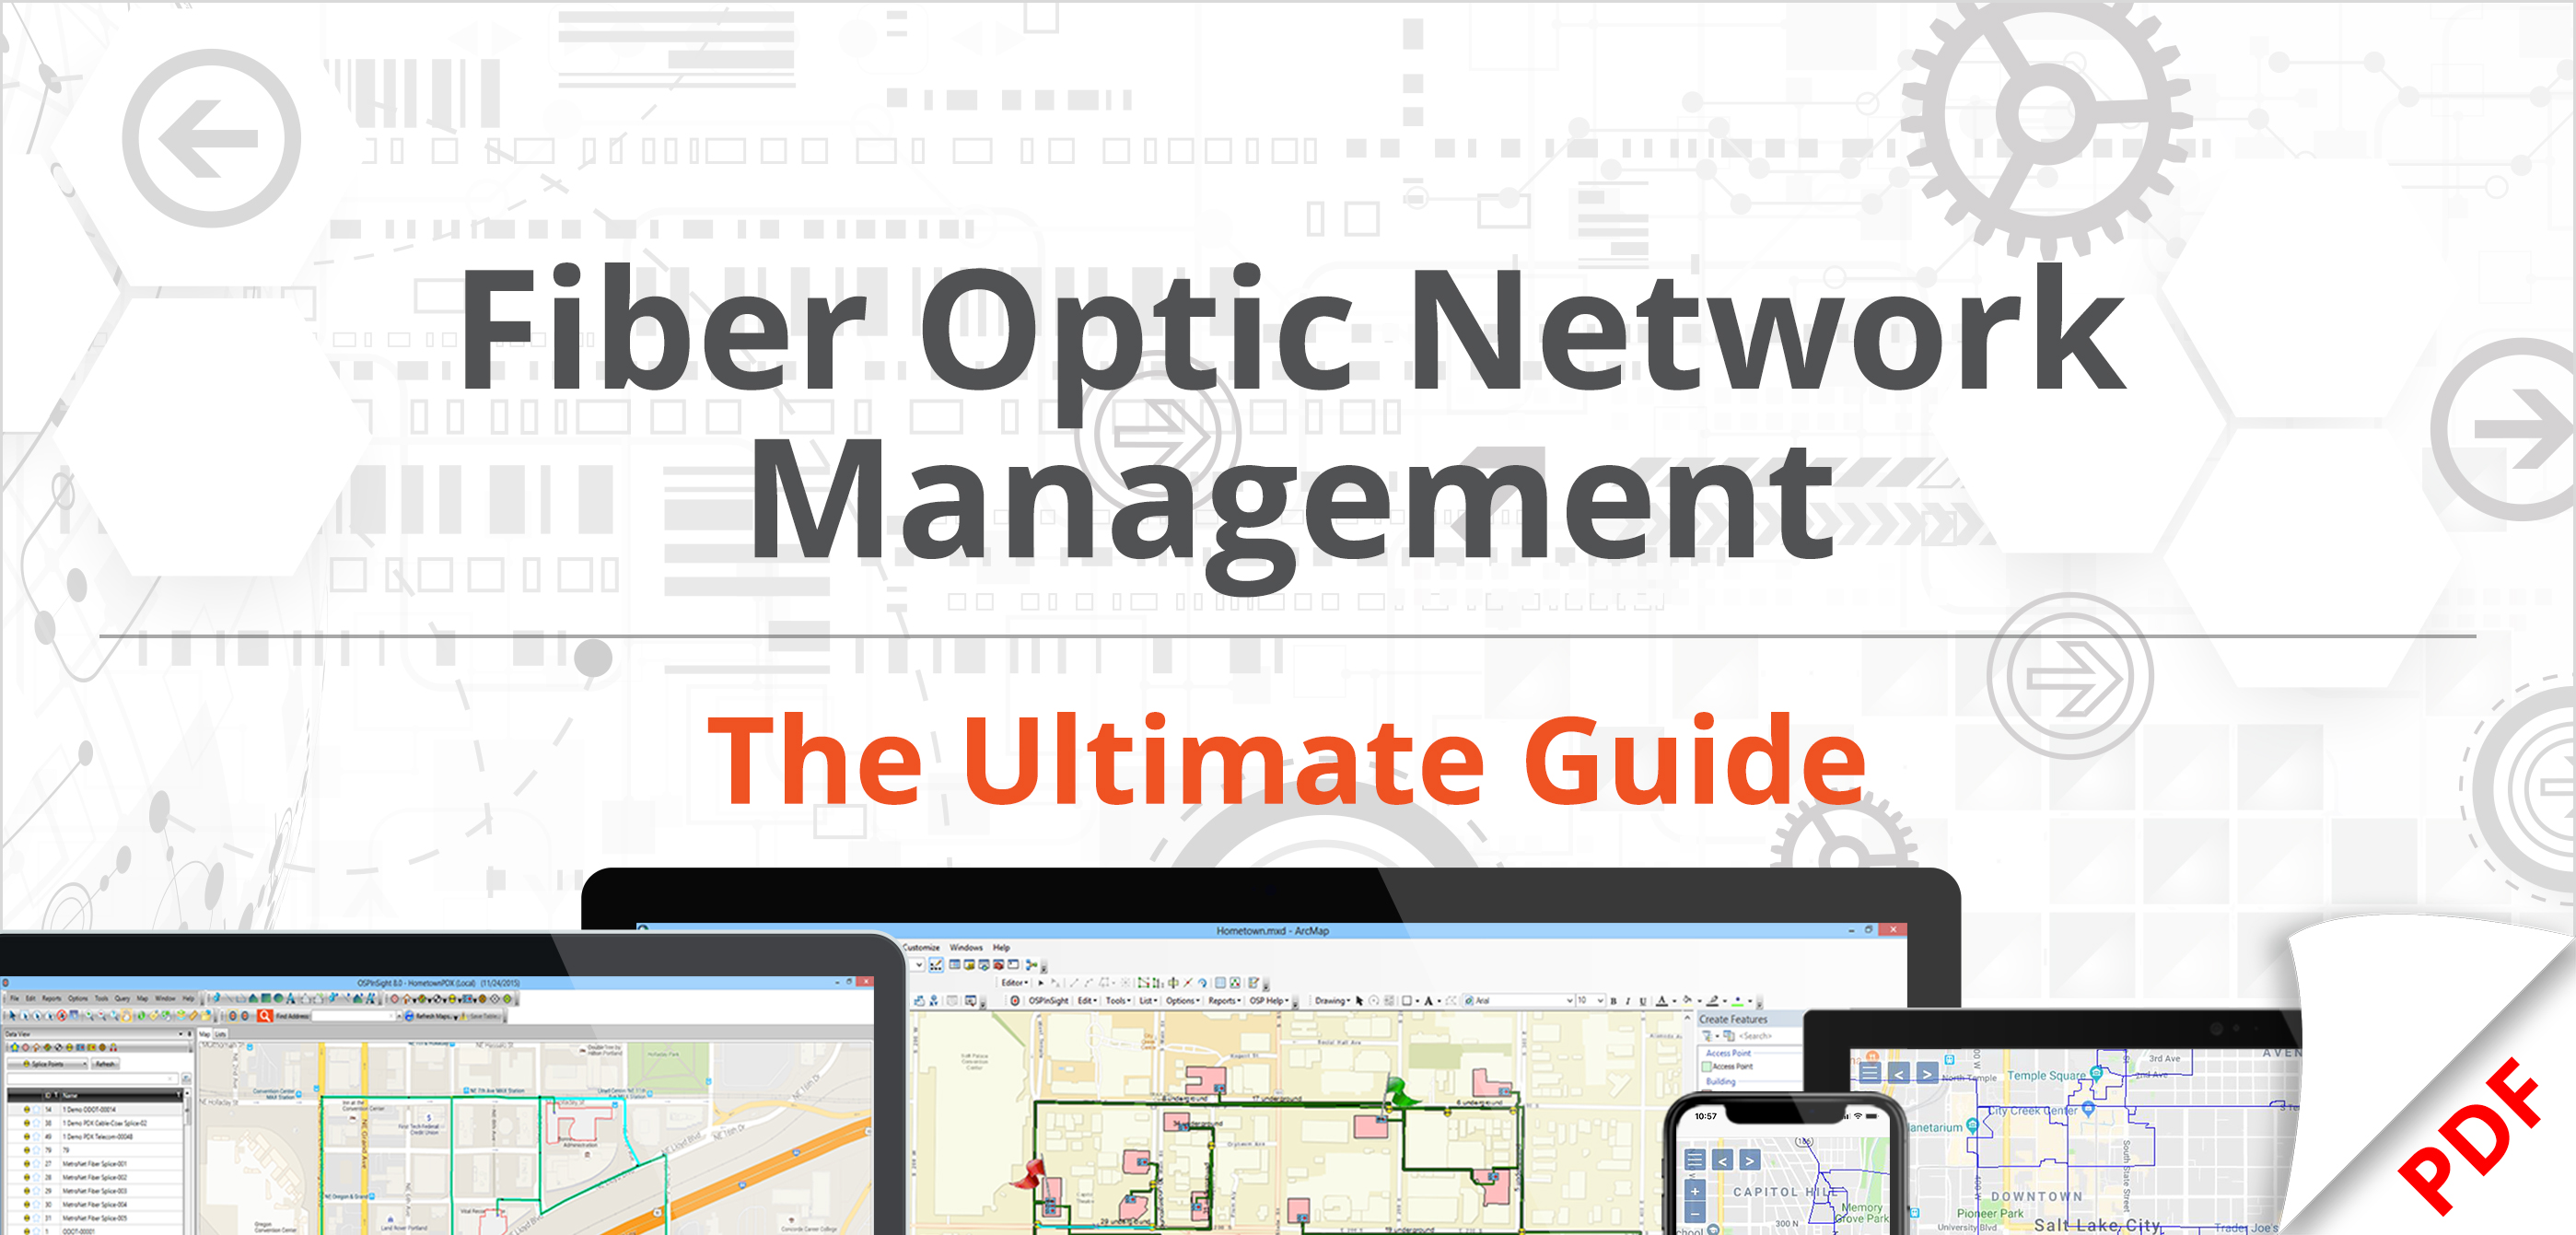 Download - Fiber Optic Network Management - Landing Page (featured image) (01.01)